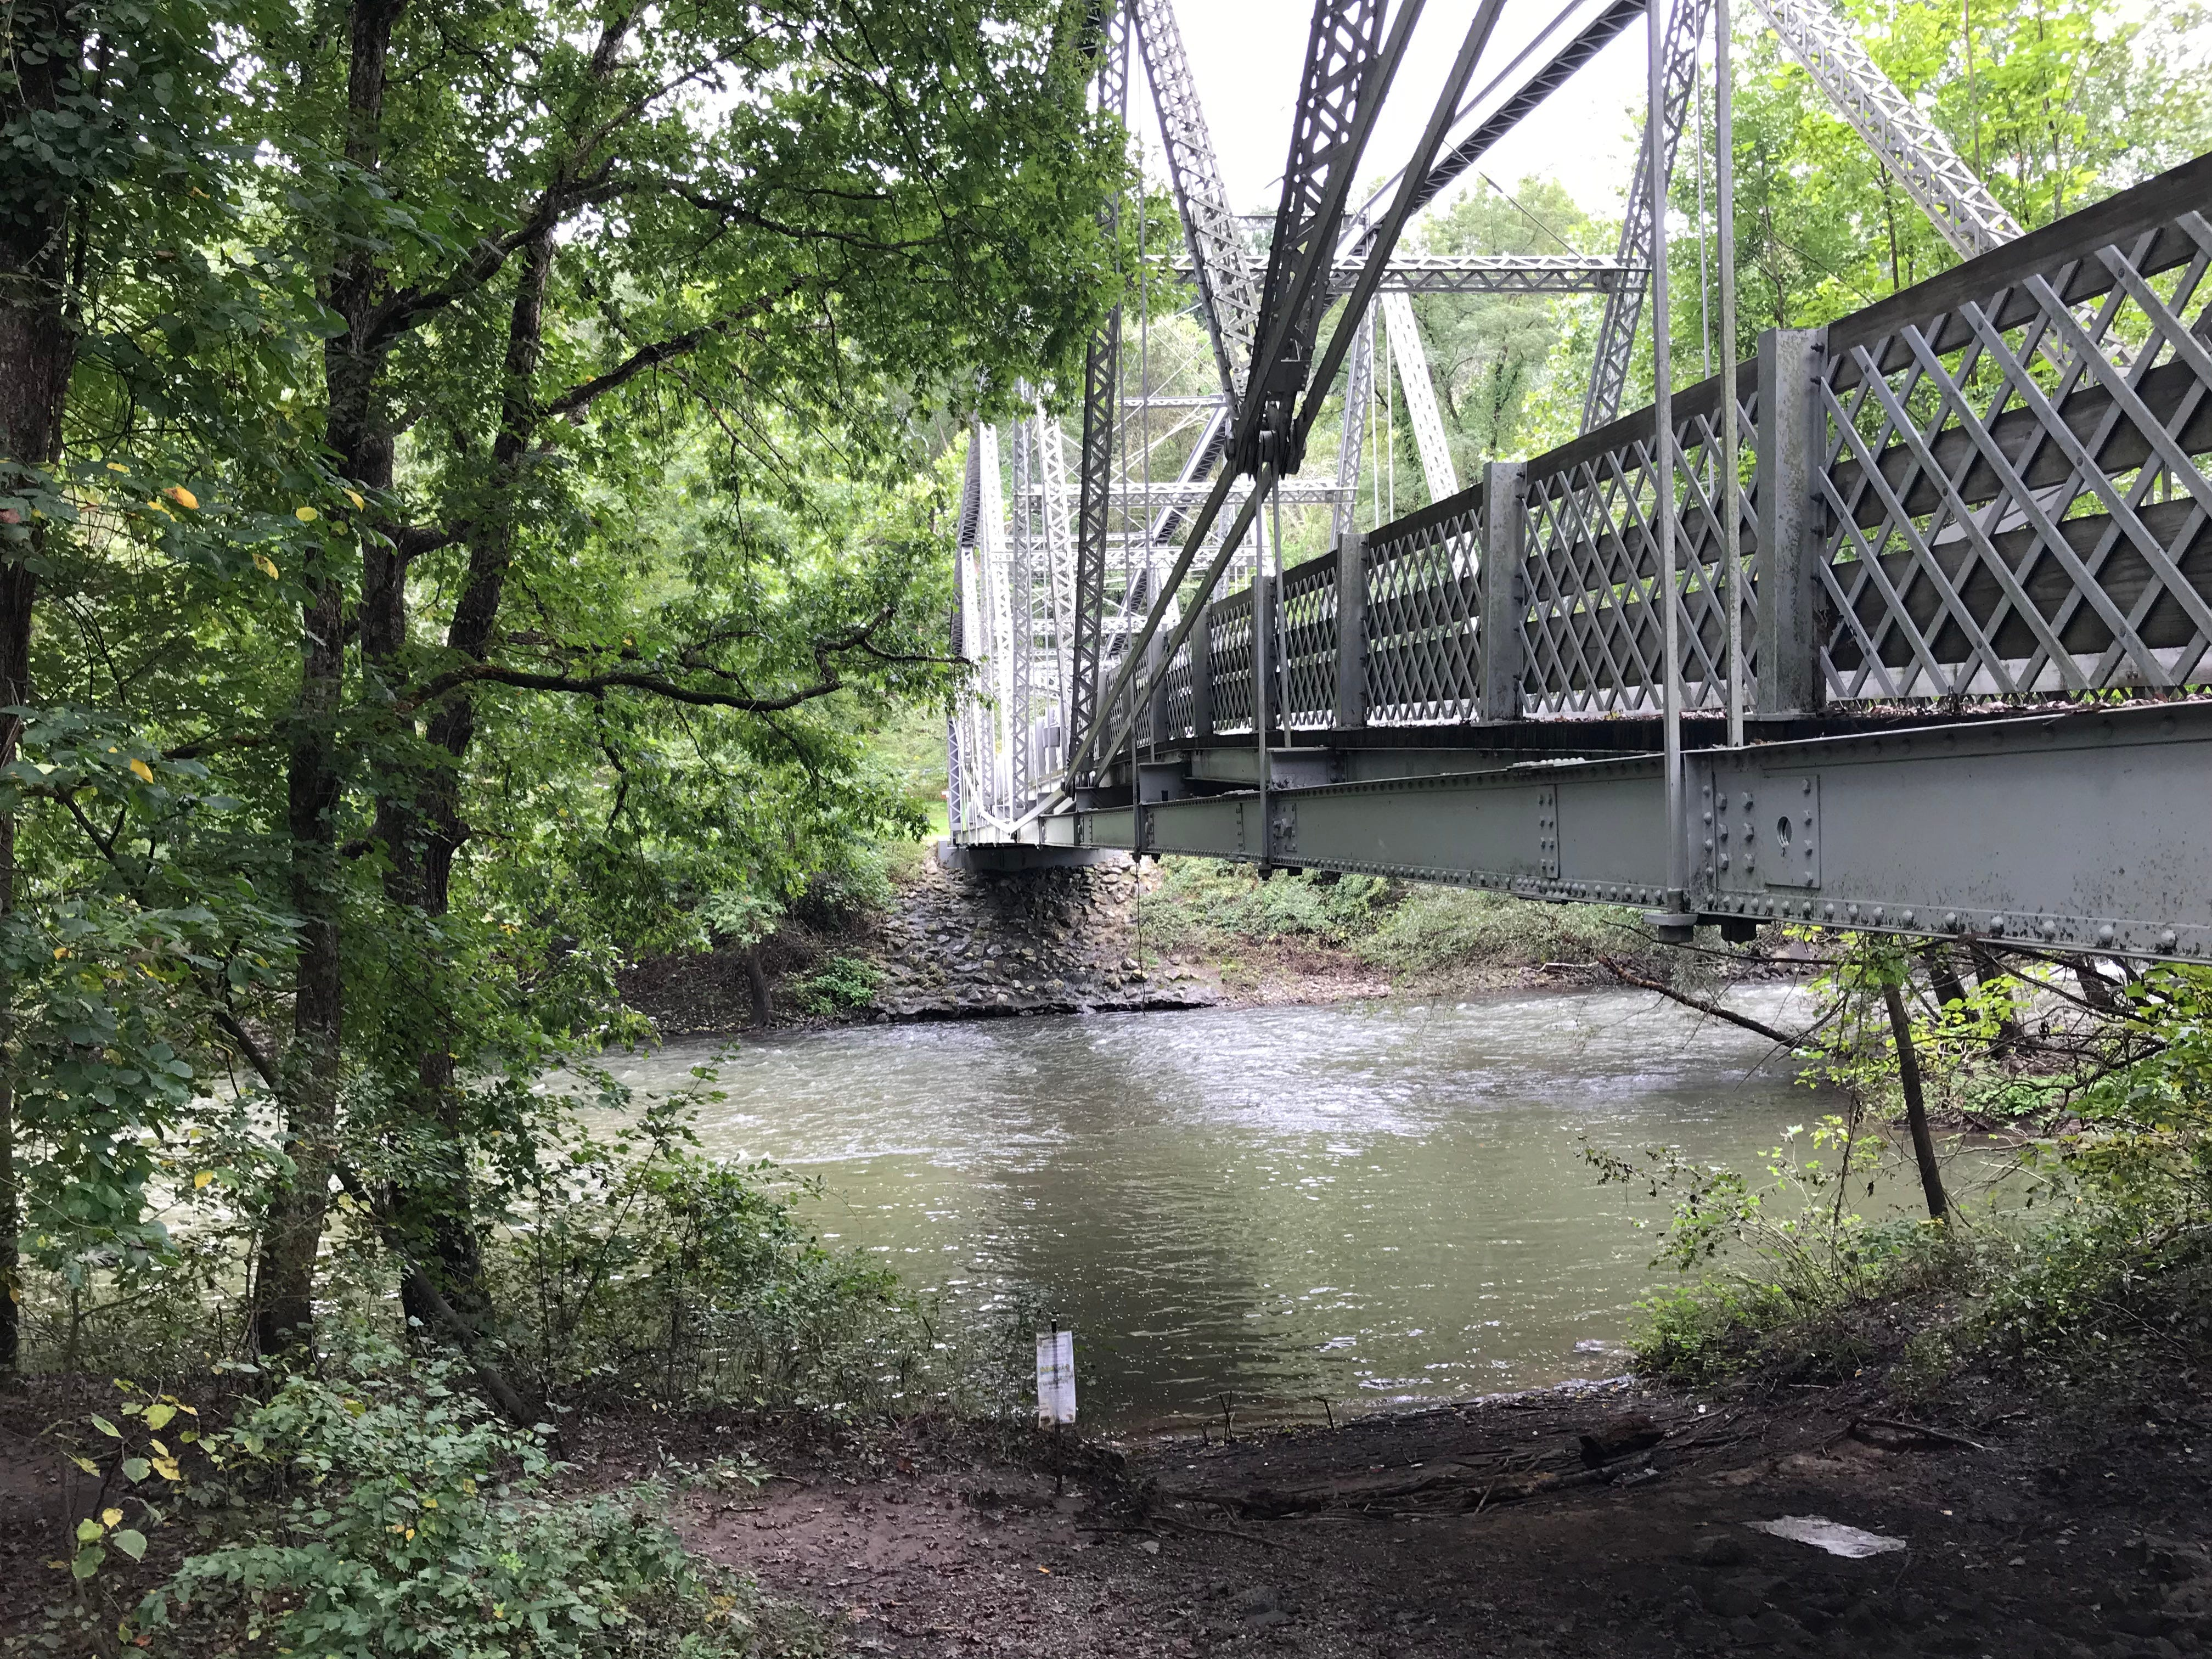 A footbridge over Swatara Creek on the Swatara Rail Trail Sept. 14, 2018.  Hurricane Florence could bring torrential rain and flooding to the Lebanon County area Sept. 17 and 18.